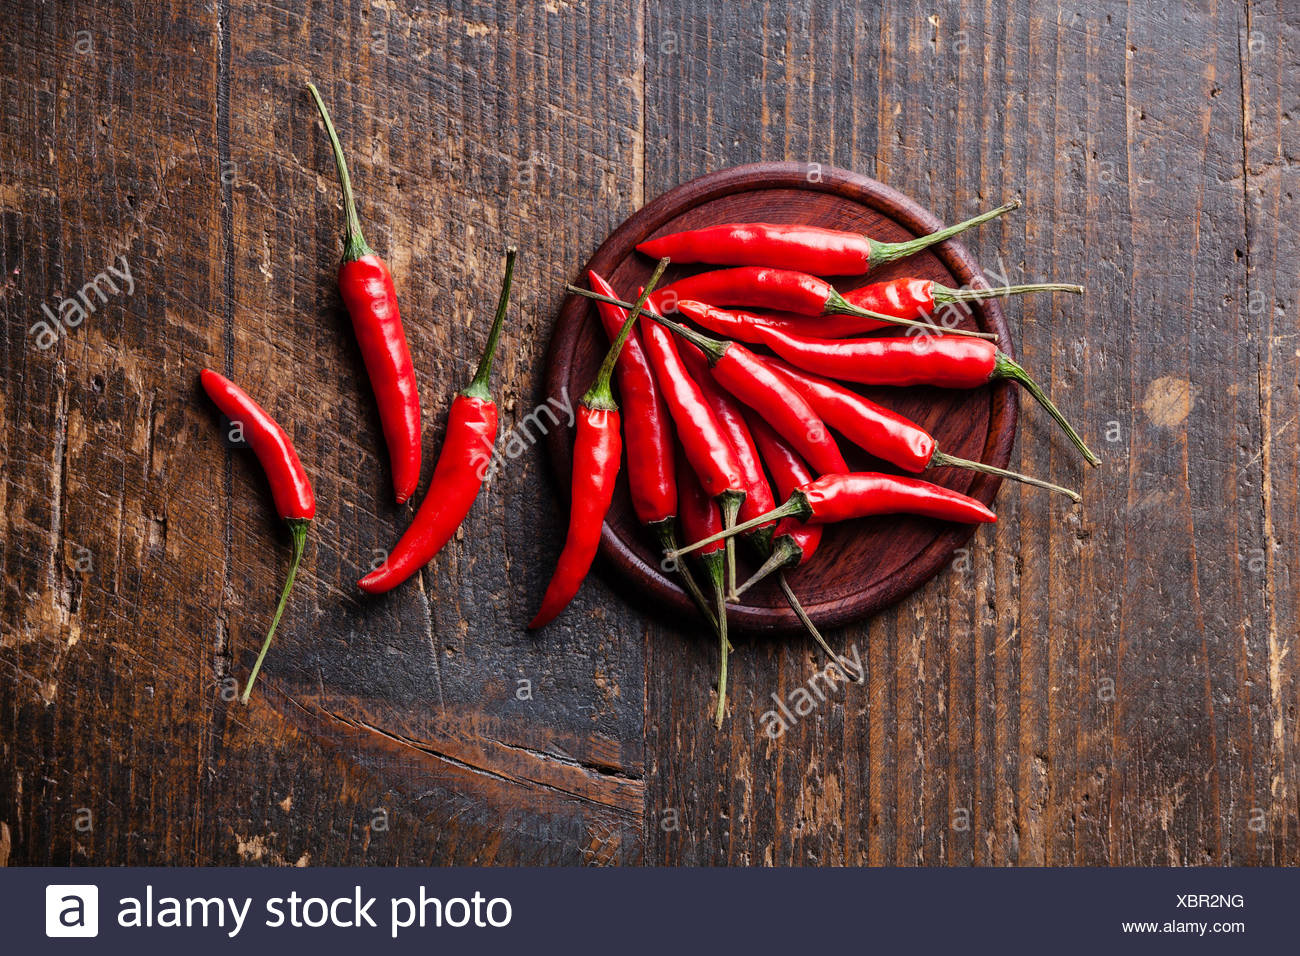 Red Hot Chili Peppers on wooden background - Stock Image